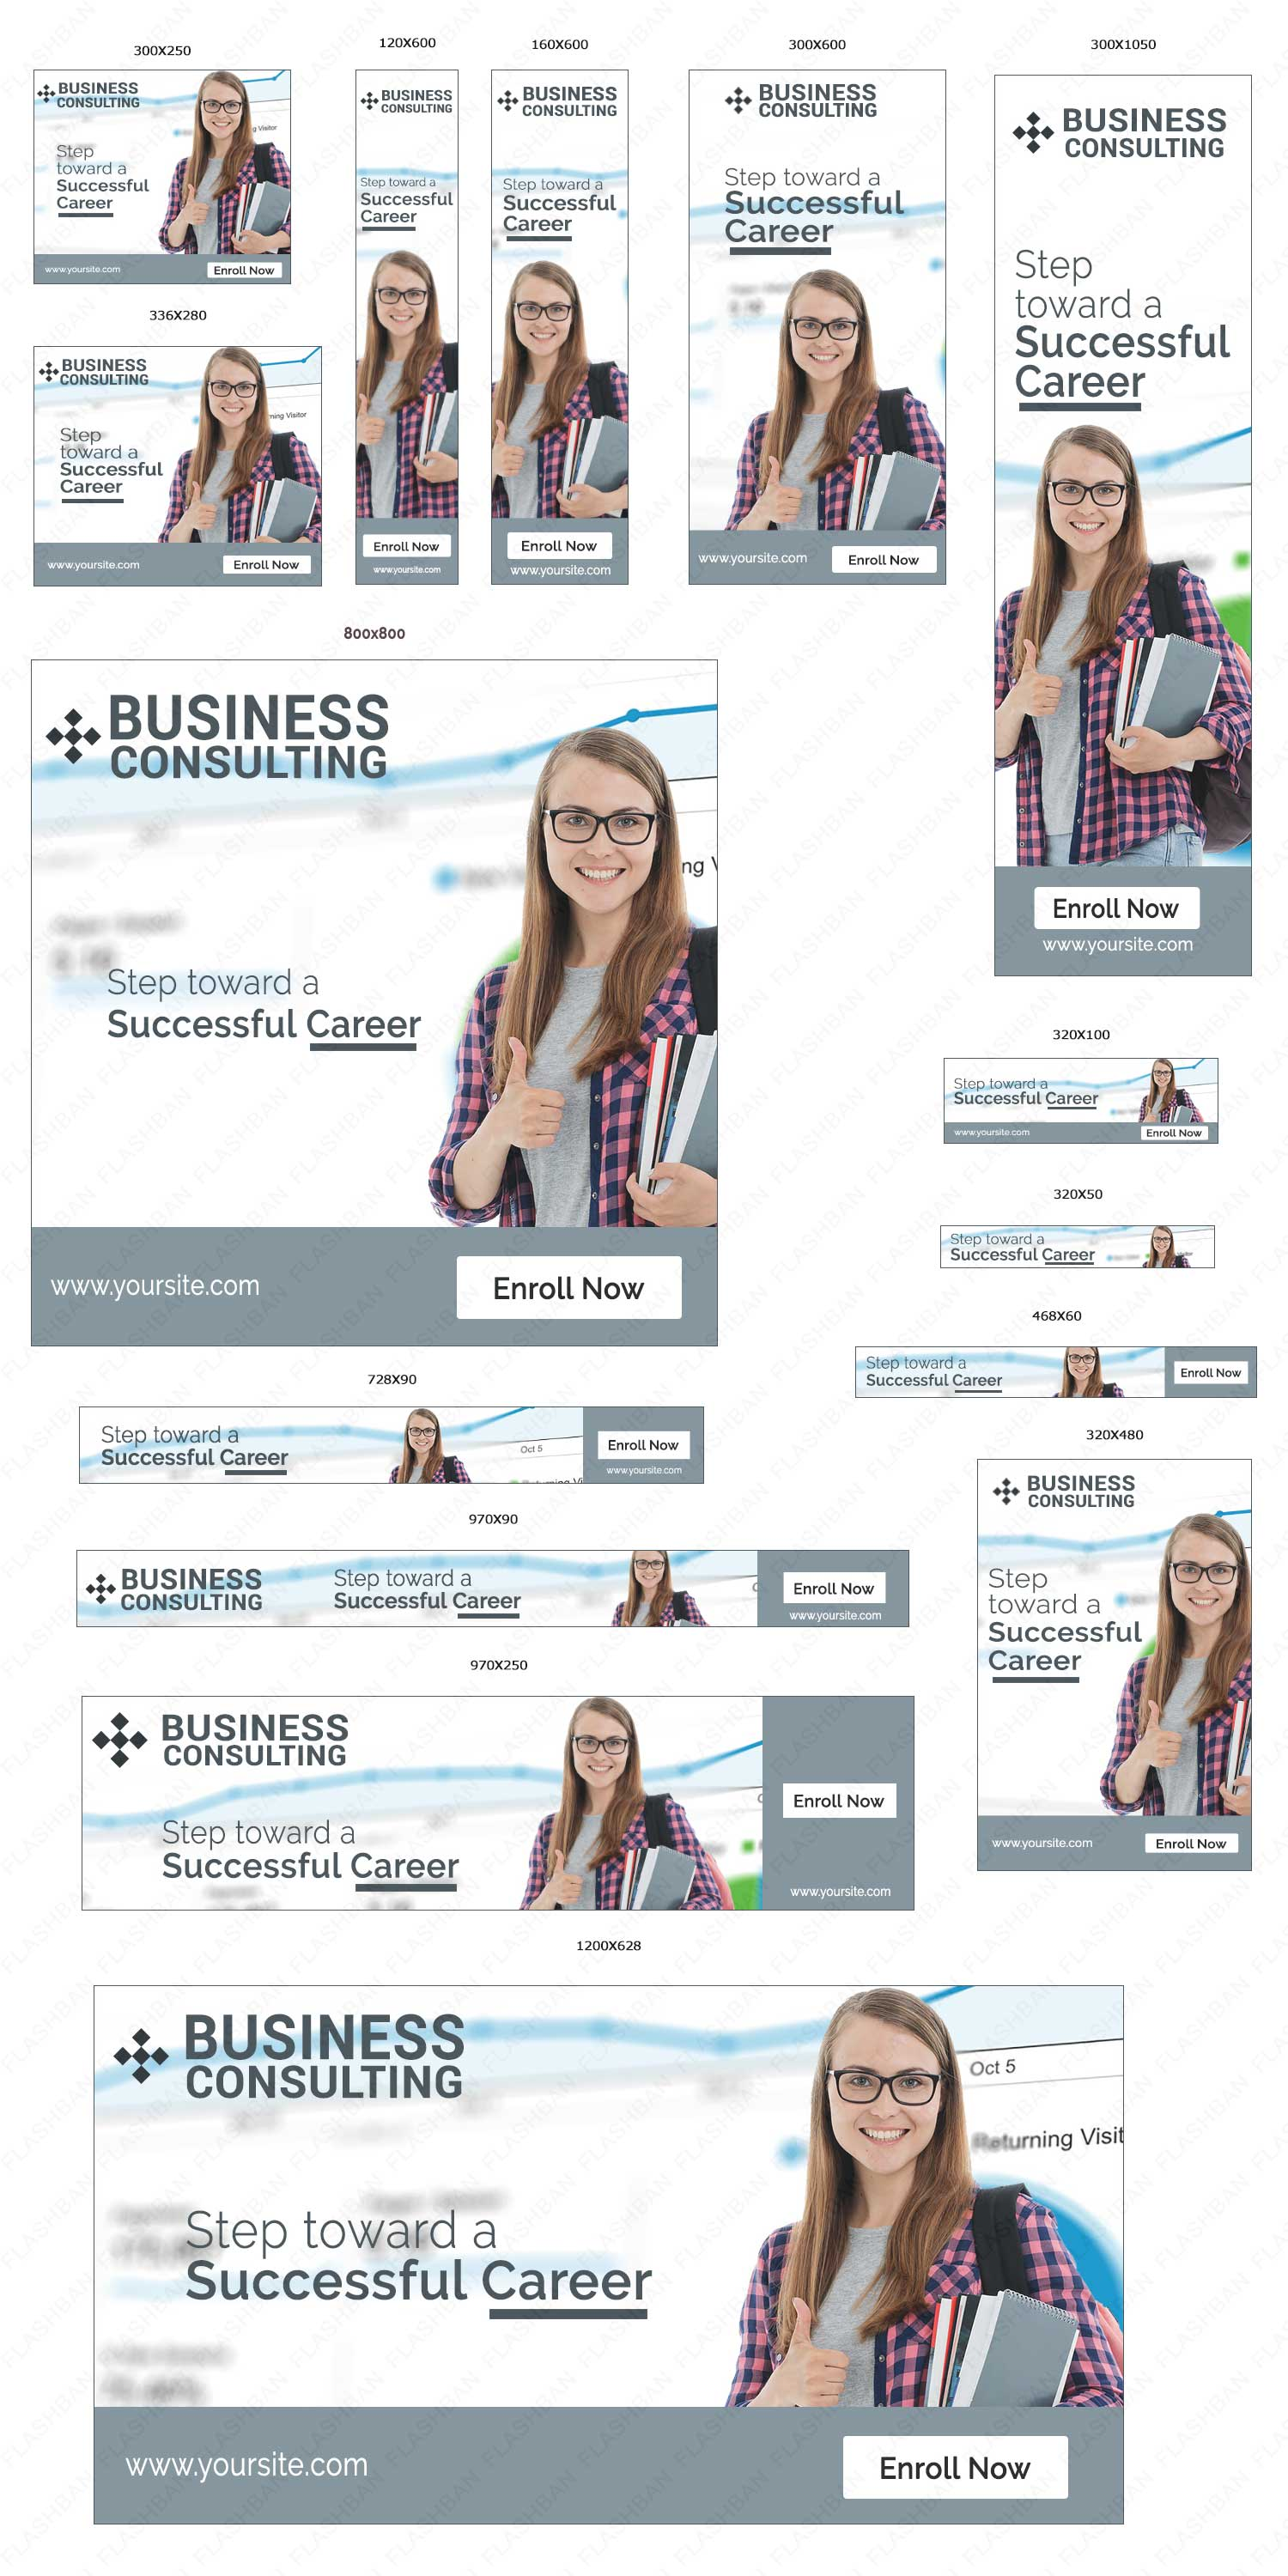 Business Consulting Ad Banner